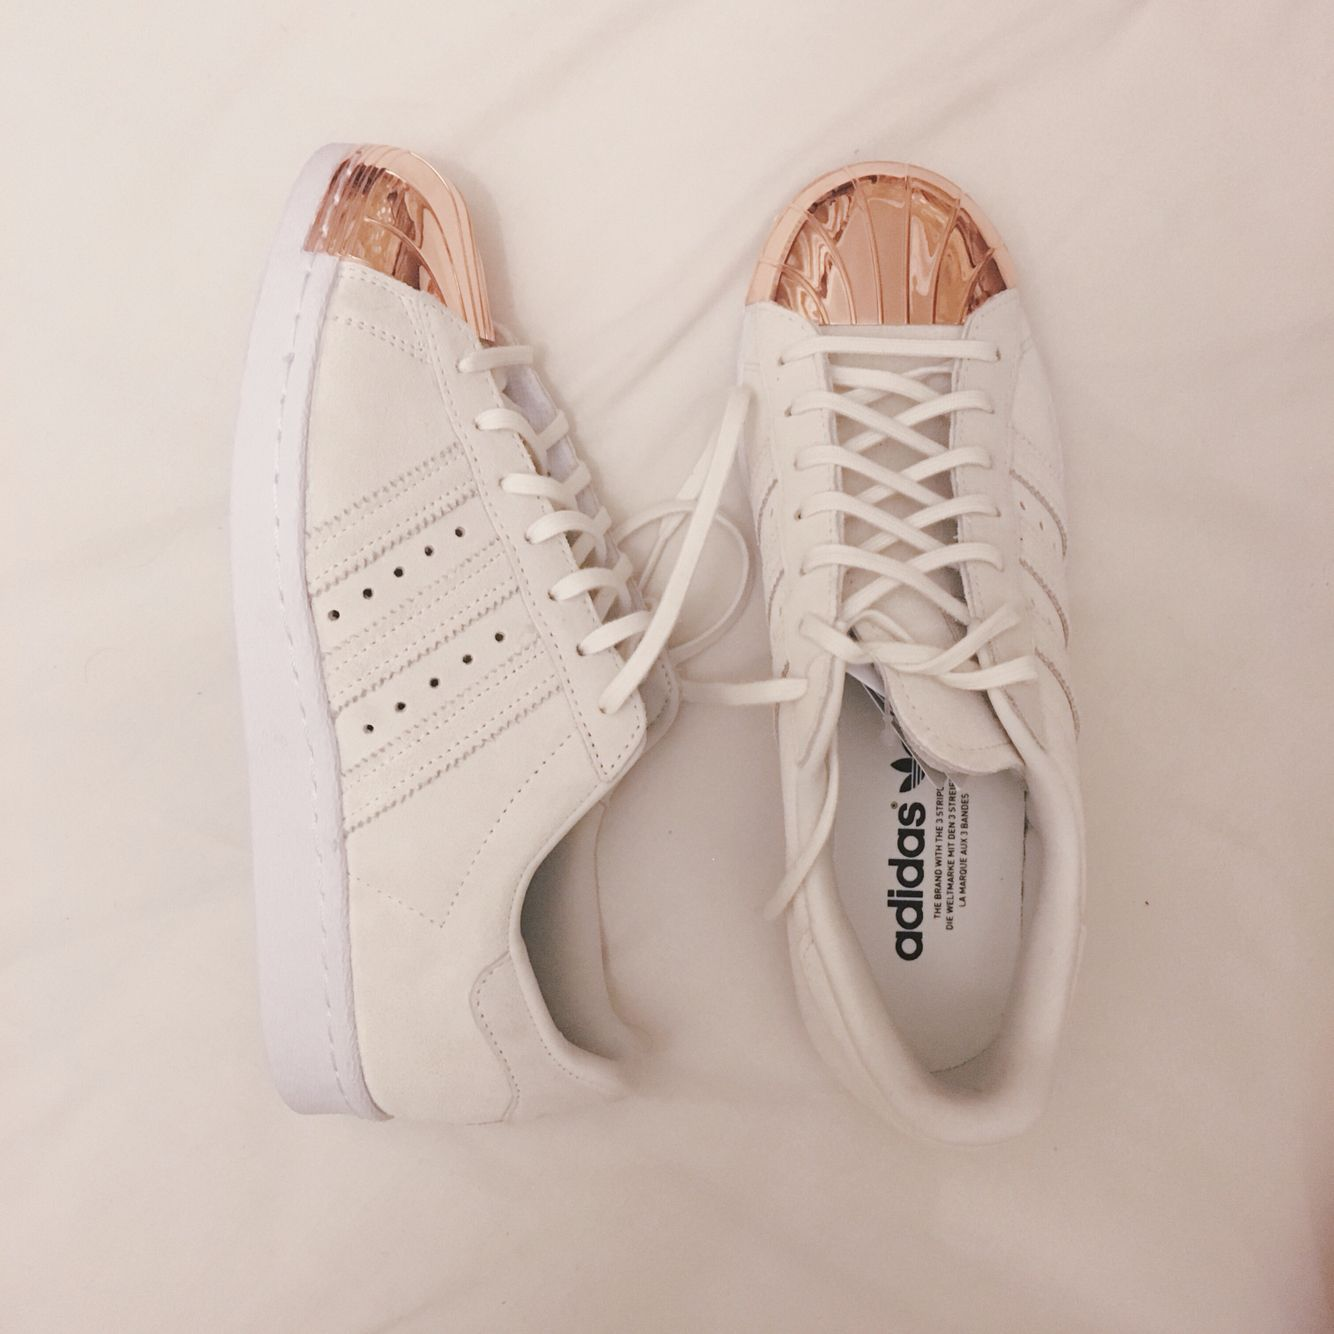 NIGO x Cheap Adidas Superstar